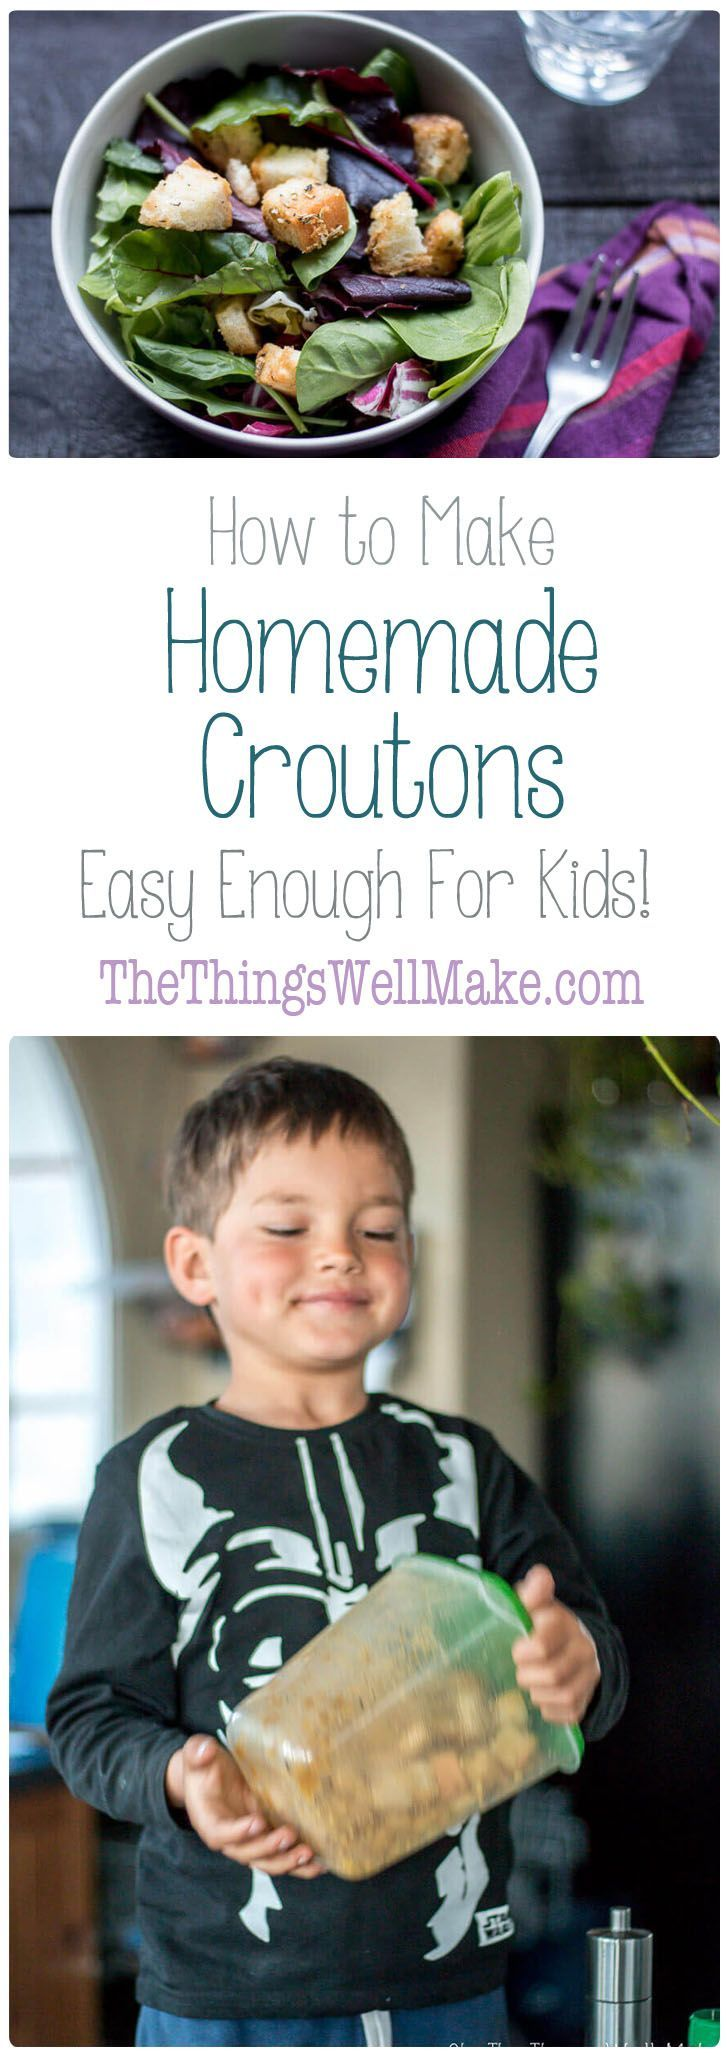 Don't let your stale bread go to waste!My young son and I will show you how to make homemade croutons from bread. It's so easy that it's a great beginner recipe for kids! via @thethingswellmake